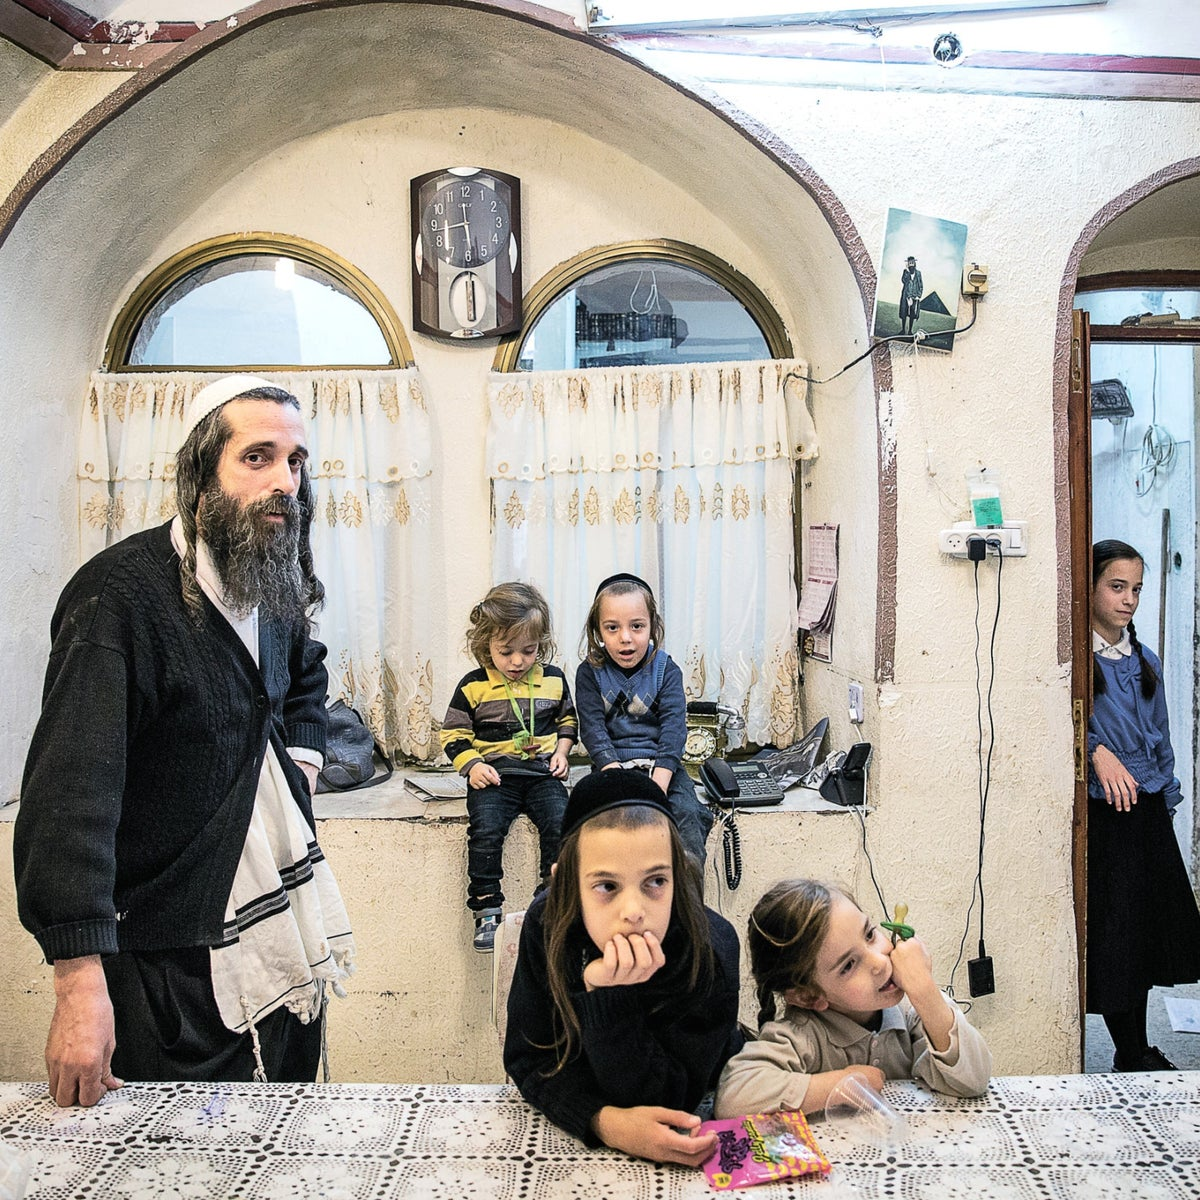 Yoelish Kraus with some of his 16 children at home in Jerusalem.  'He is like the king of the family,' says his wife.